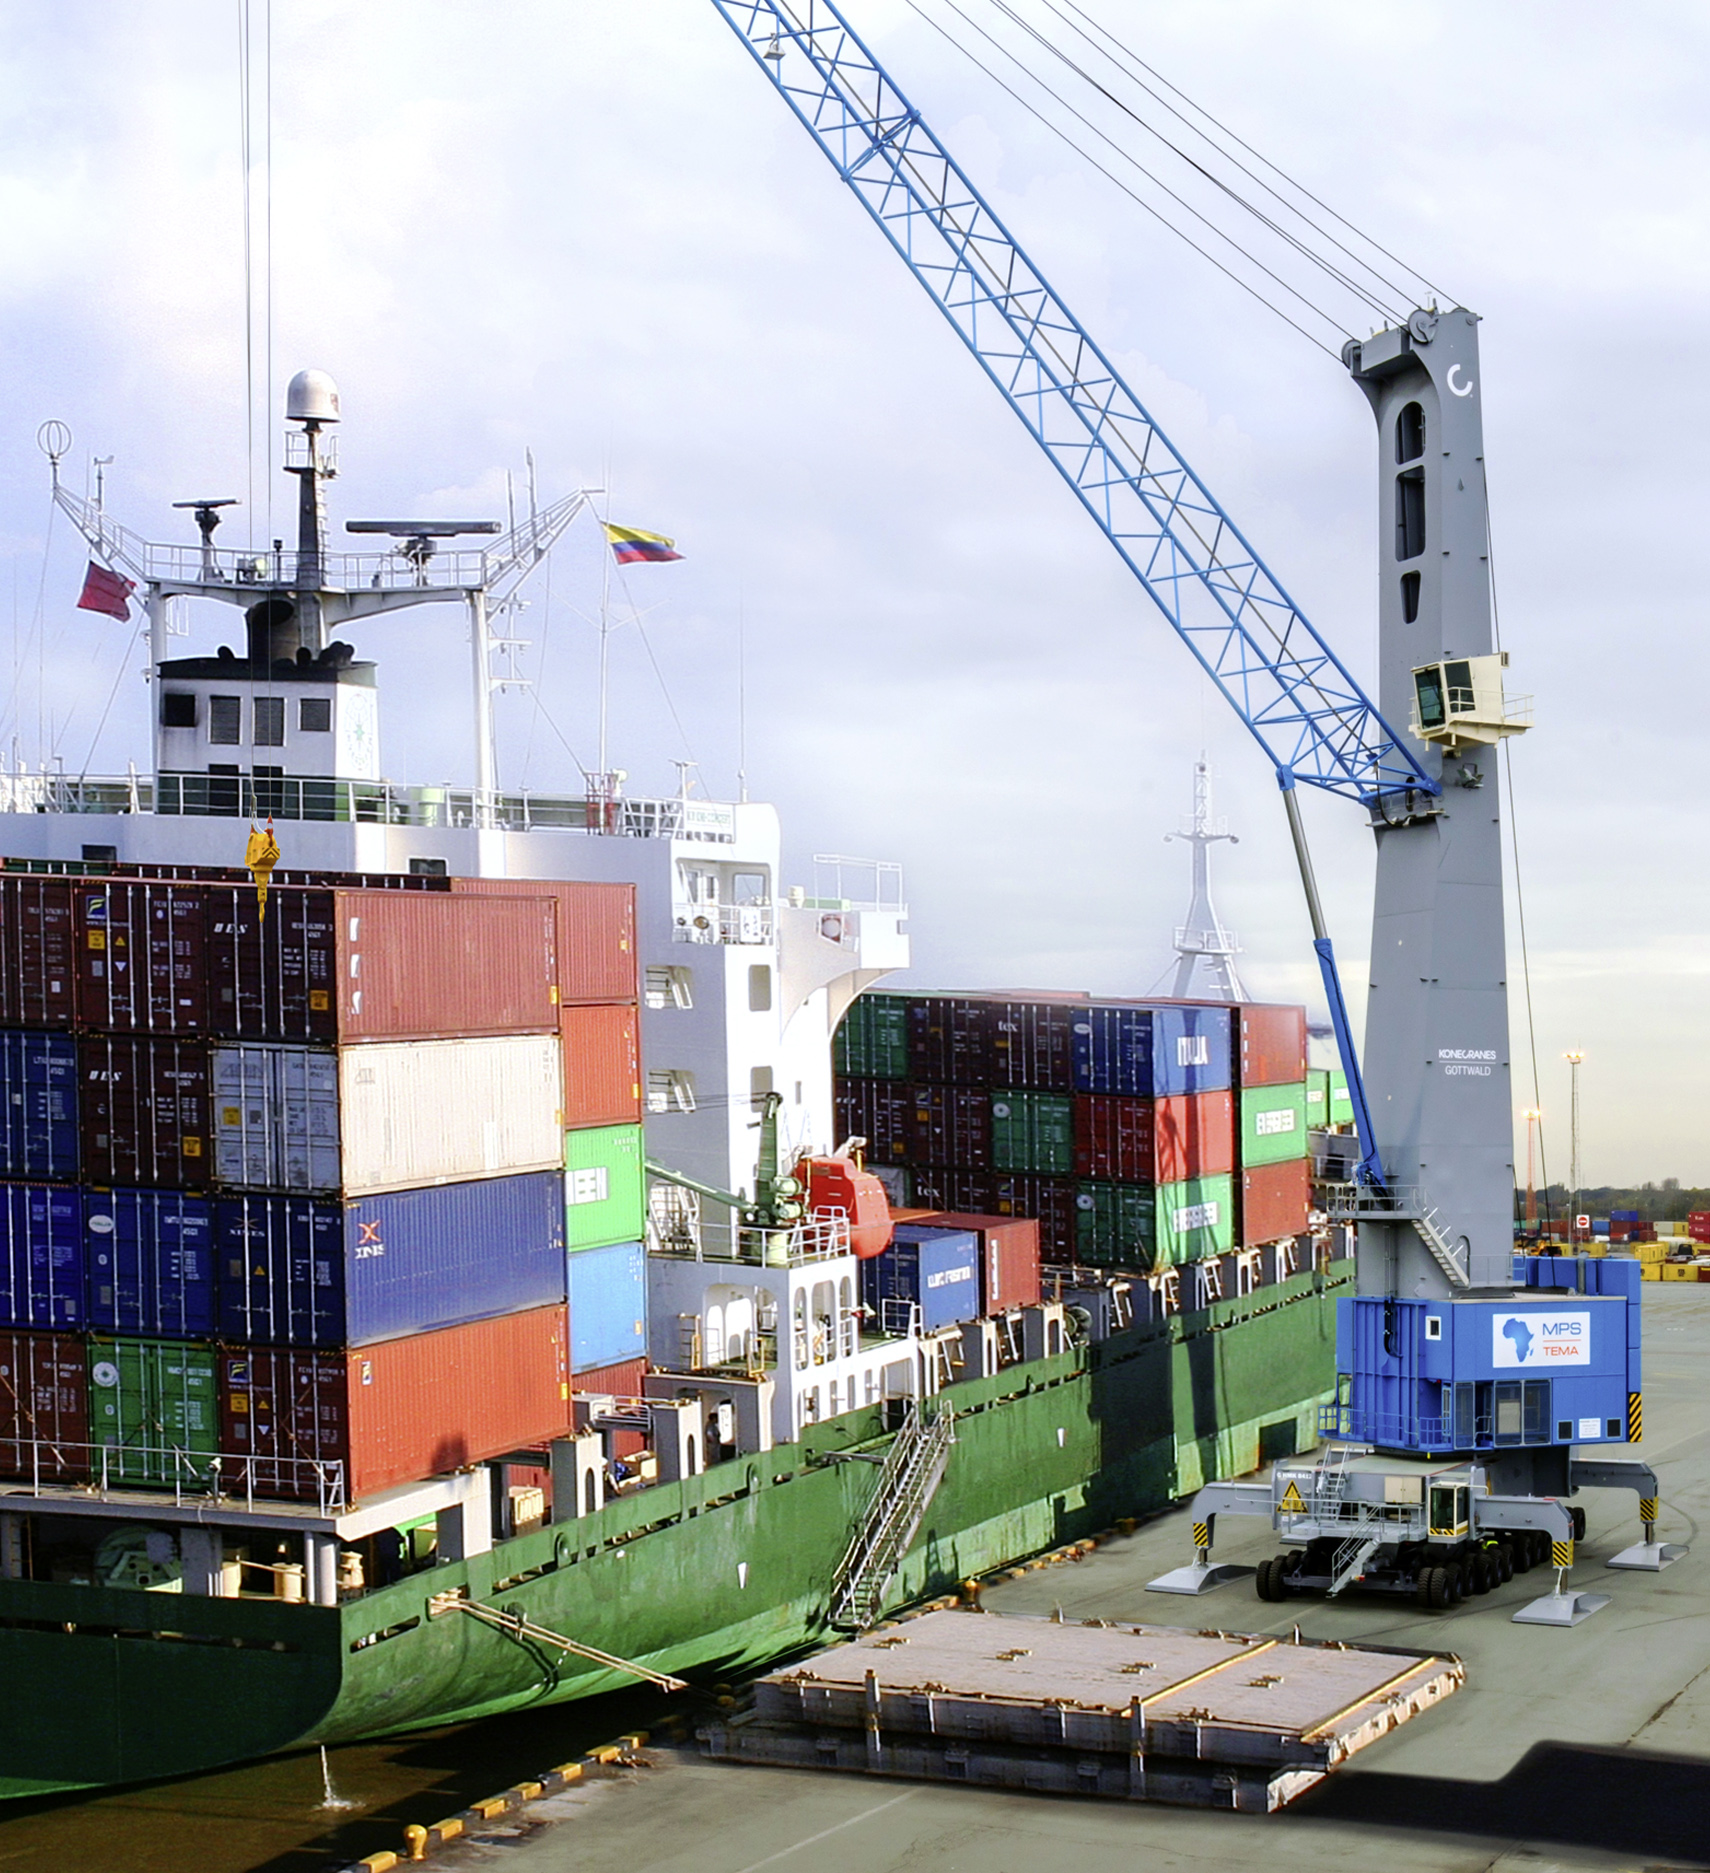 A 12-axle G HMK 8412 crane in operation with MPS in the Ghanain Port of Tema